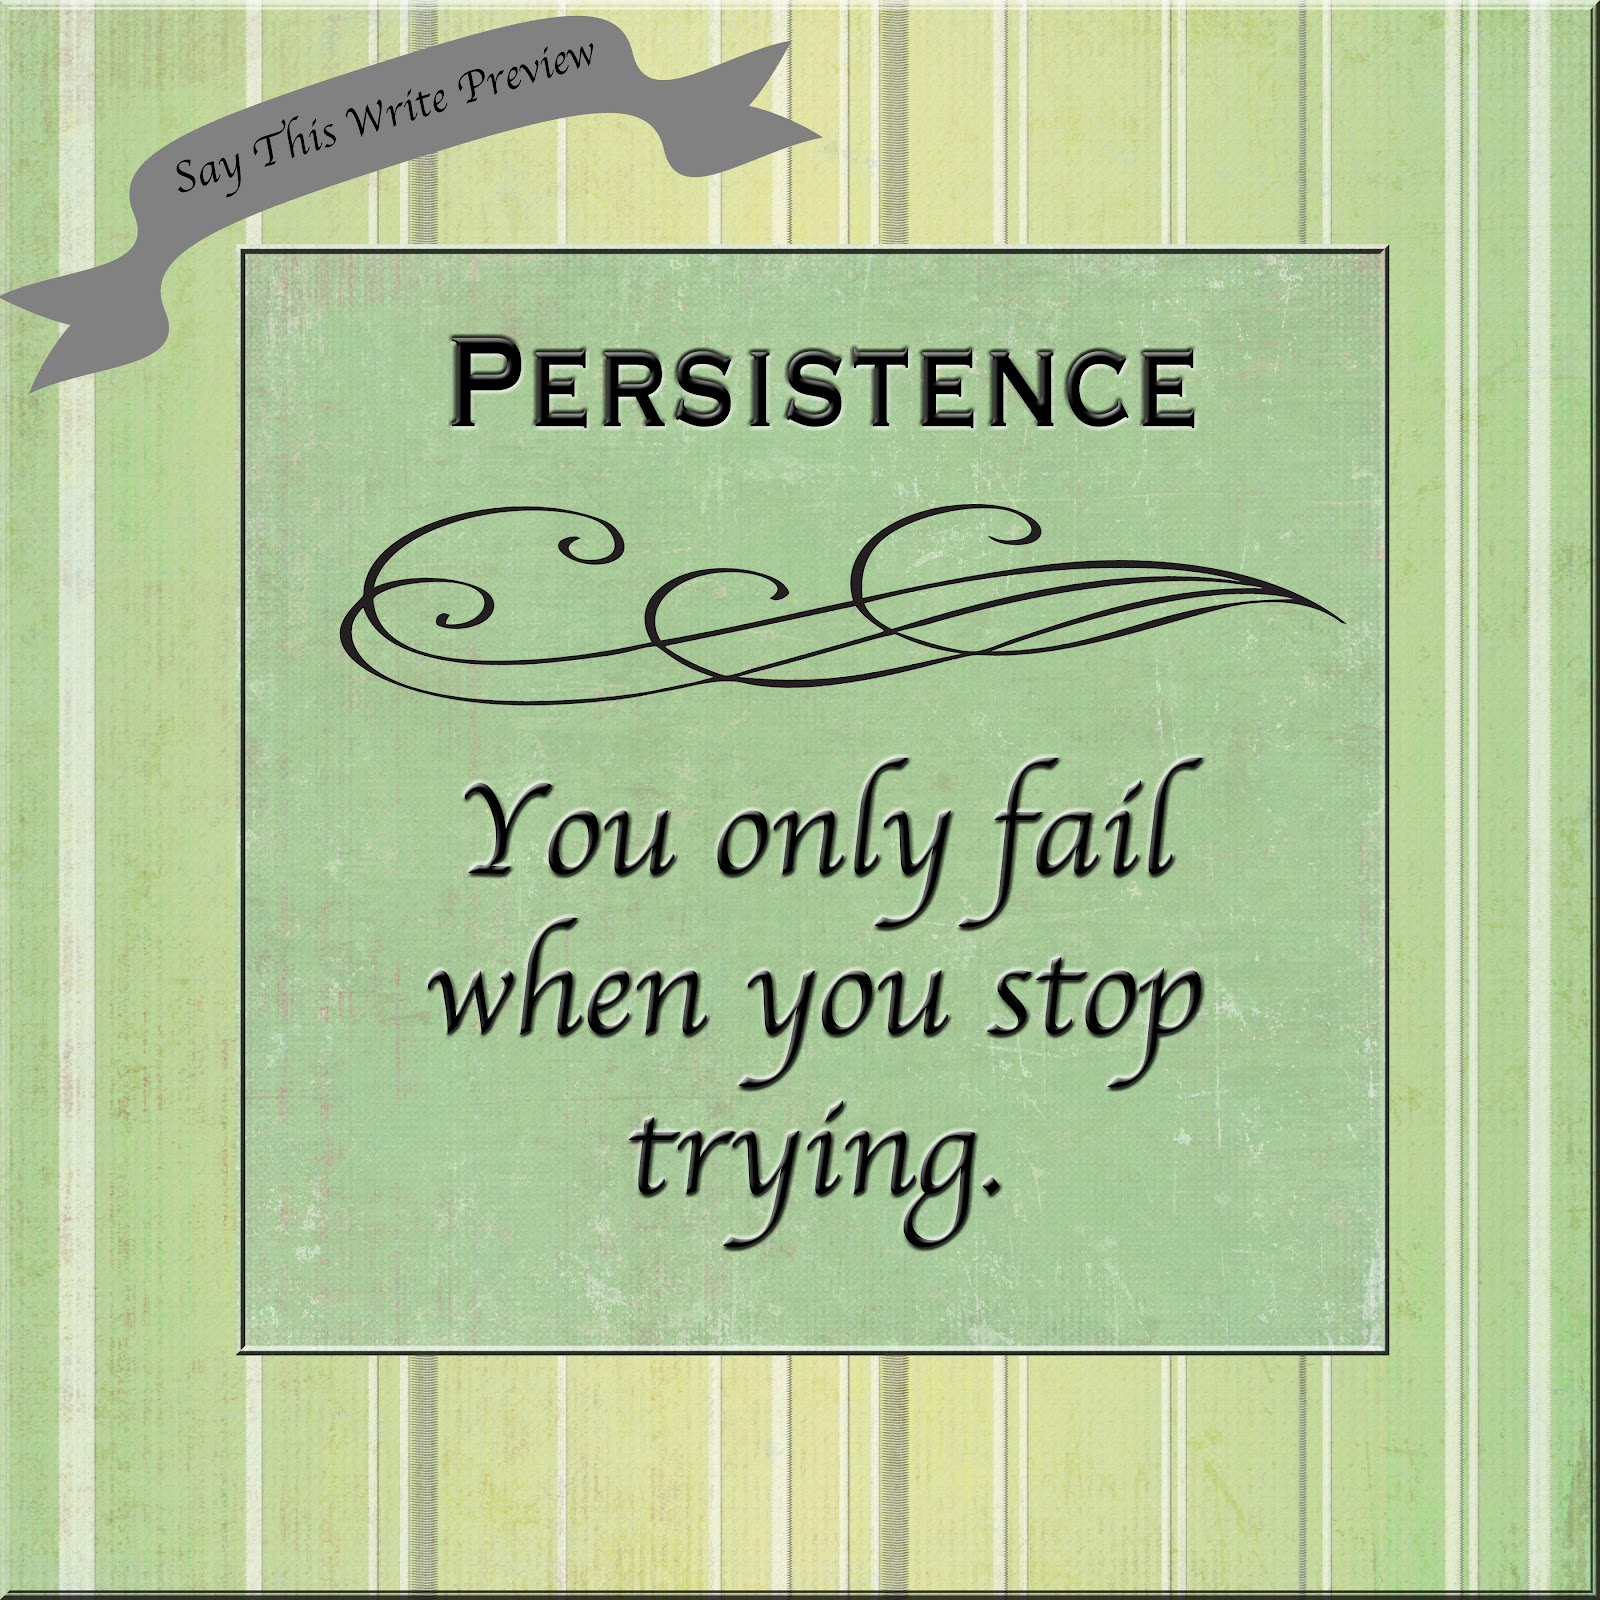 Quotations About Persistence: Say This Write: Persistence